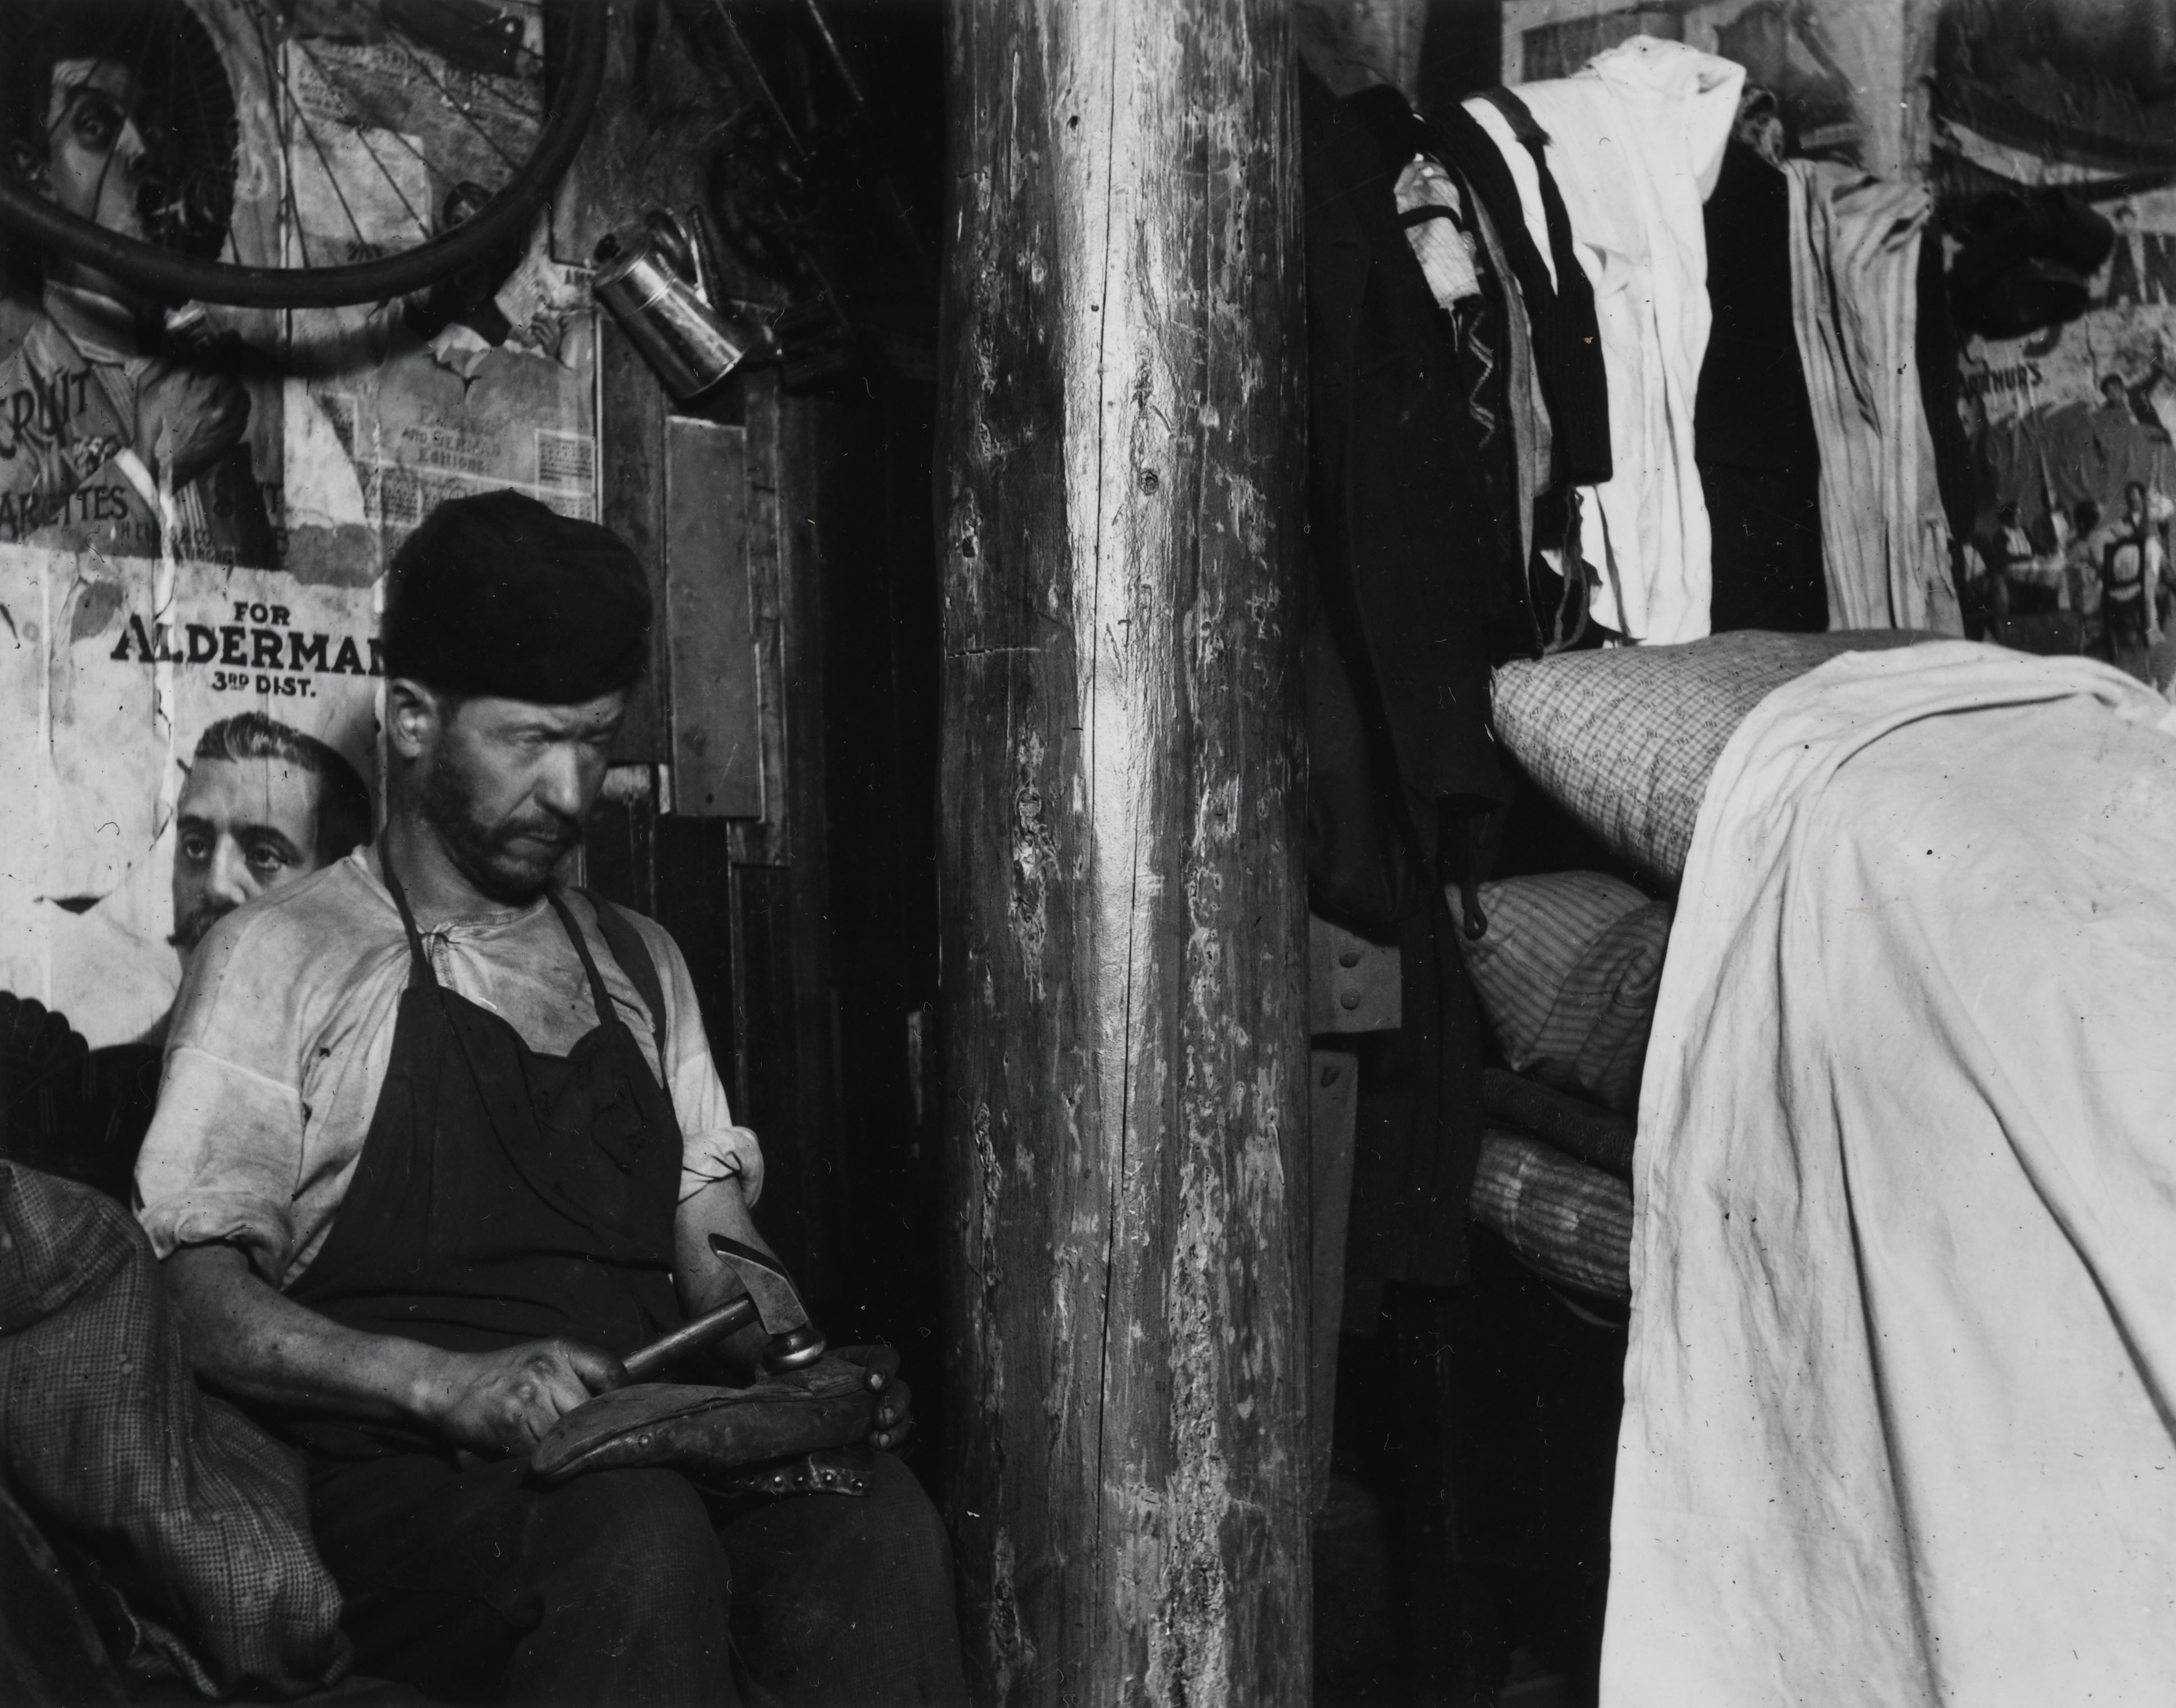 """Shoemaker Working in a house in the Yard of 219 Broome Street, Which the Landlord Built When the Sanitary Police Put him out of the Basement. Clatterpol Sticks Up Through his House. Rent $ 12 a Month."" Via Preus Museum"